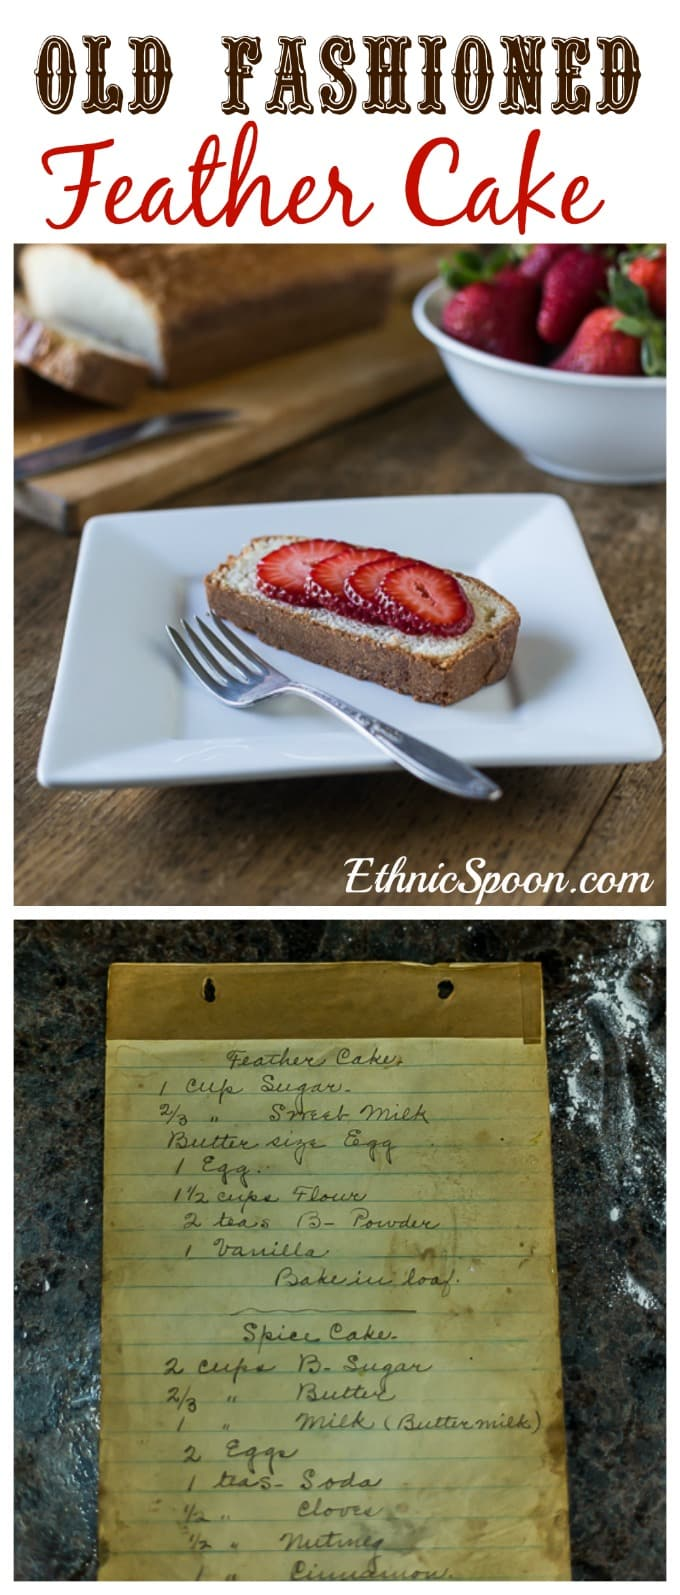 Aunt Lou's Feather Cake: A simple old fashioned cake baked in a loaf pan. This is similar to pound cake but somewhat lighter. | ethnicspoon.com